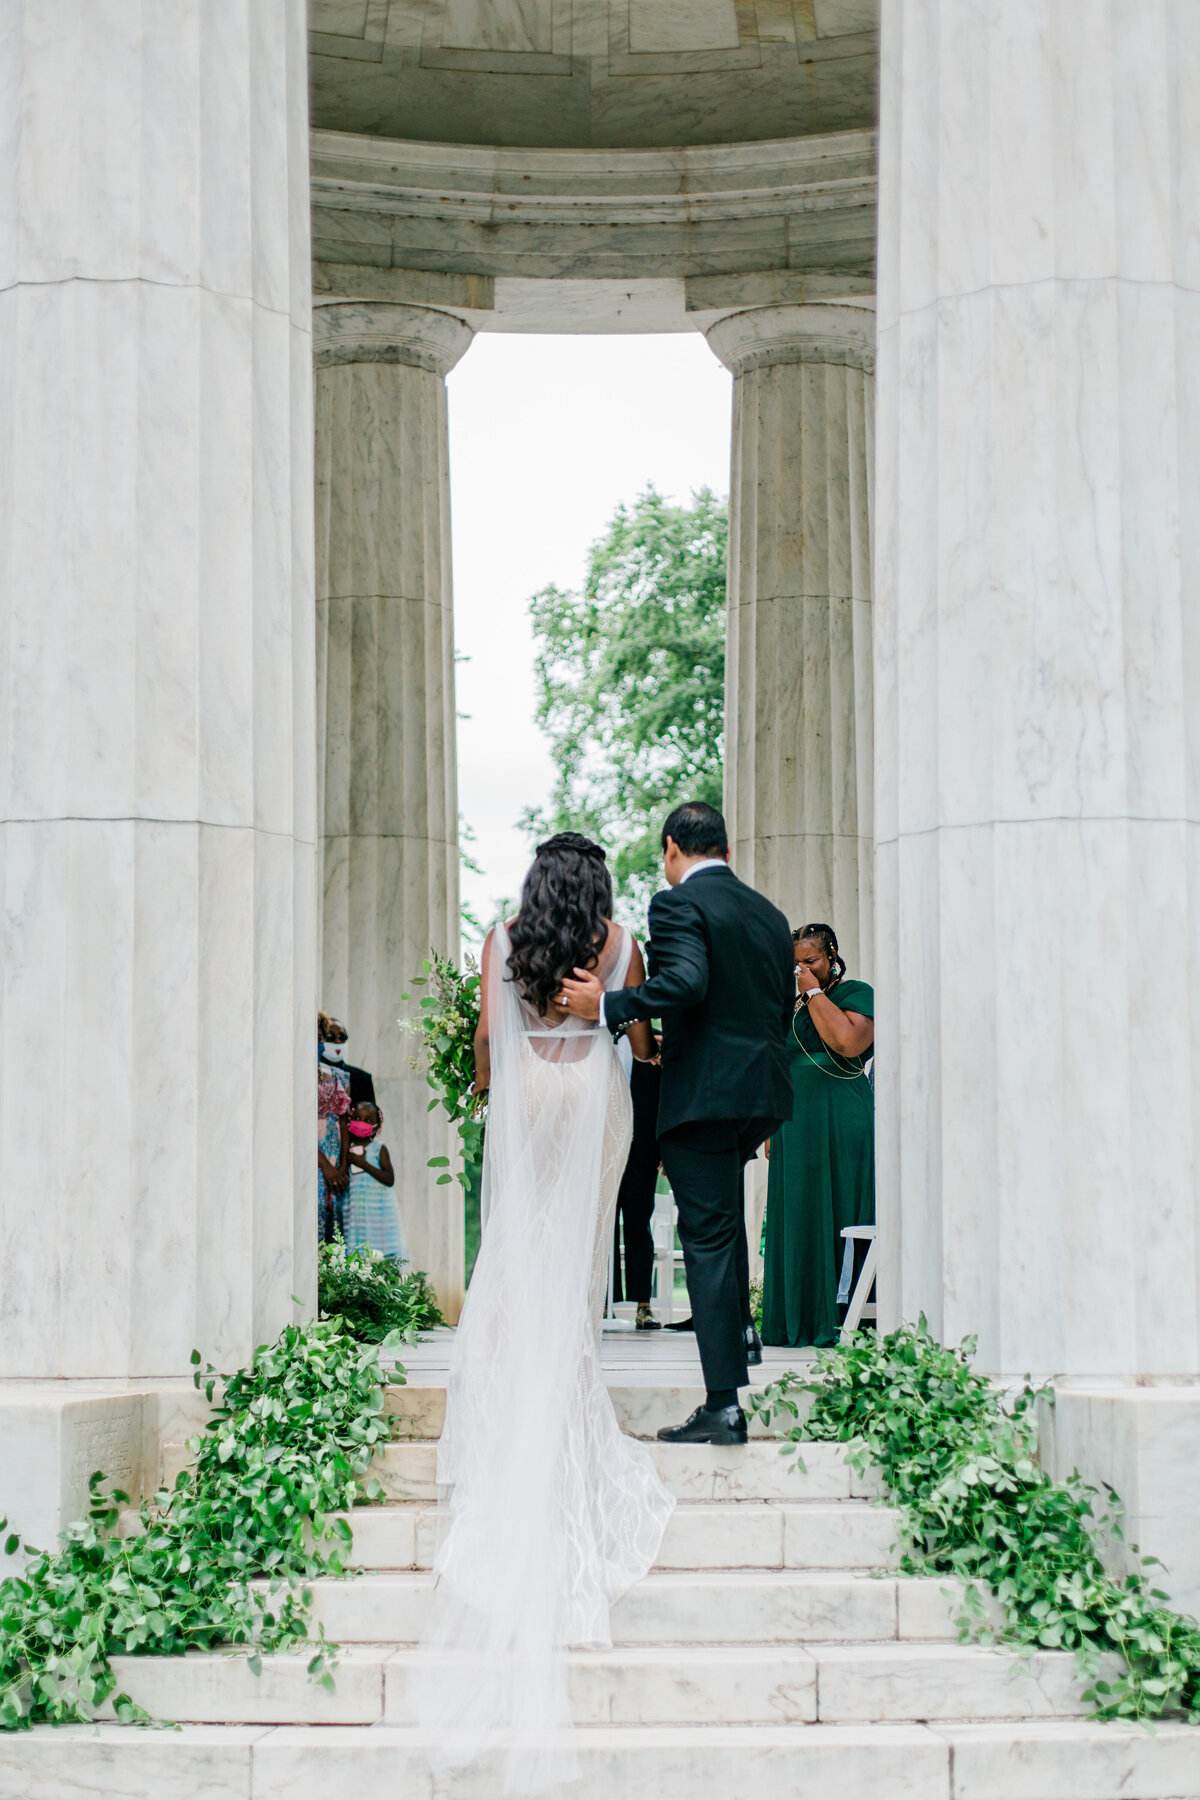 Solomon_Tkeyah_Micro_COVID_Wedding_Washington_DC_War_Memorial_MLK_Memorial_Linoln_Memorial_Angelika_Johns_Photography-1017